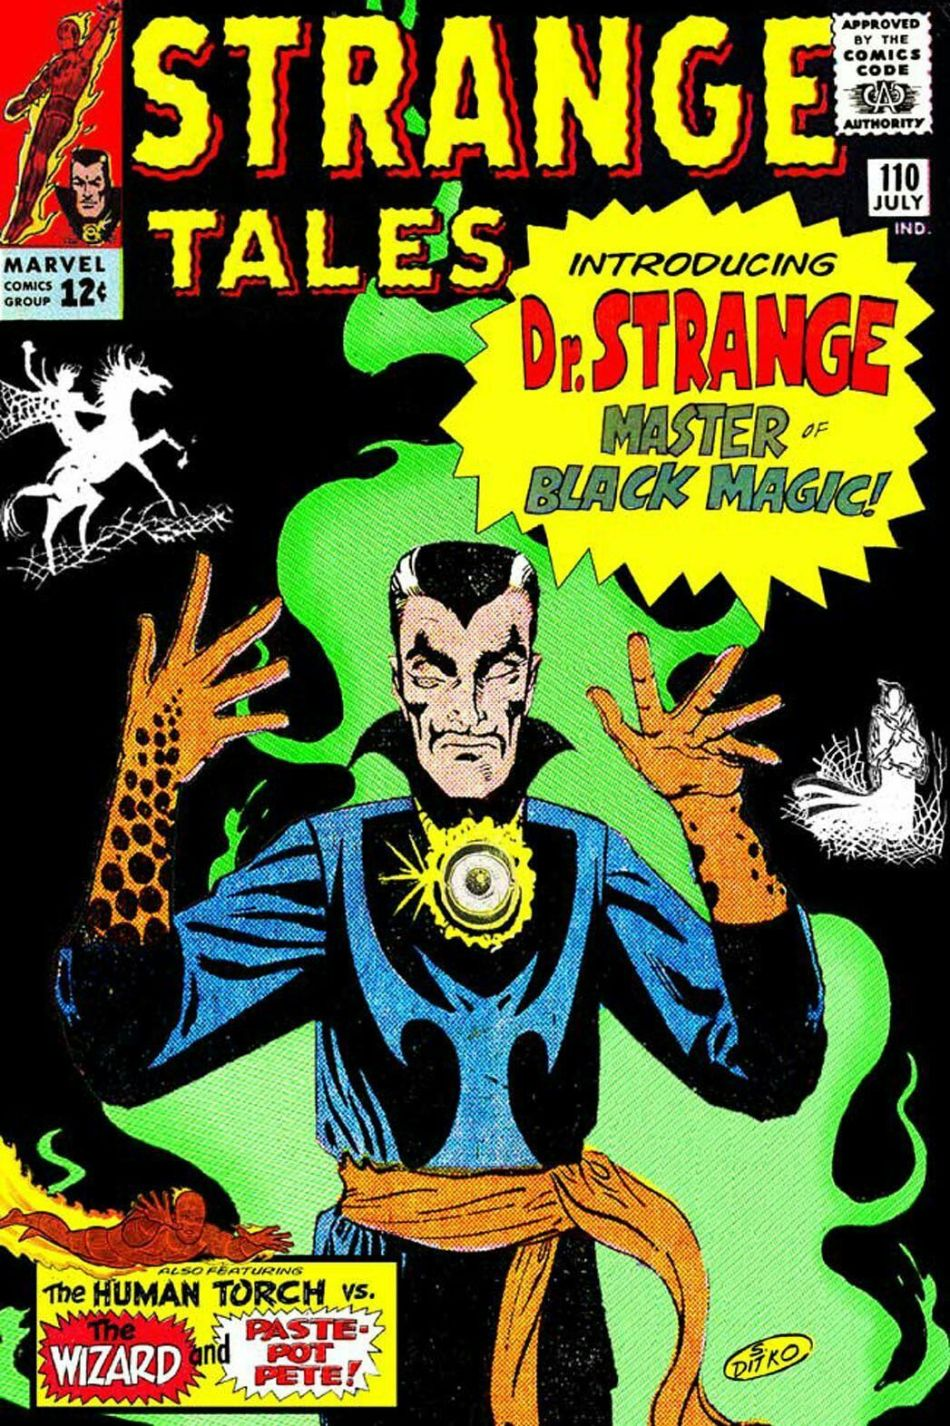 Dr. Strange's First Appearance: Strange Tales Issue #110